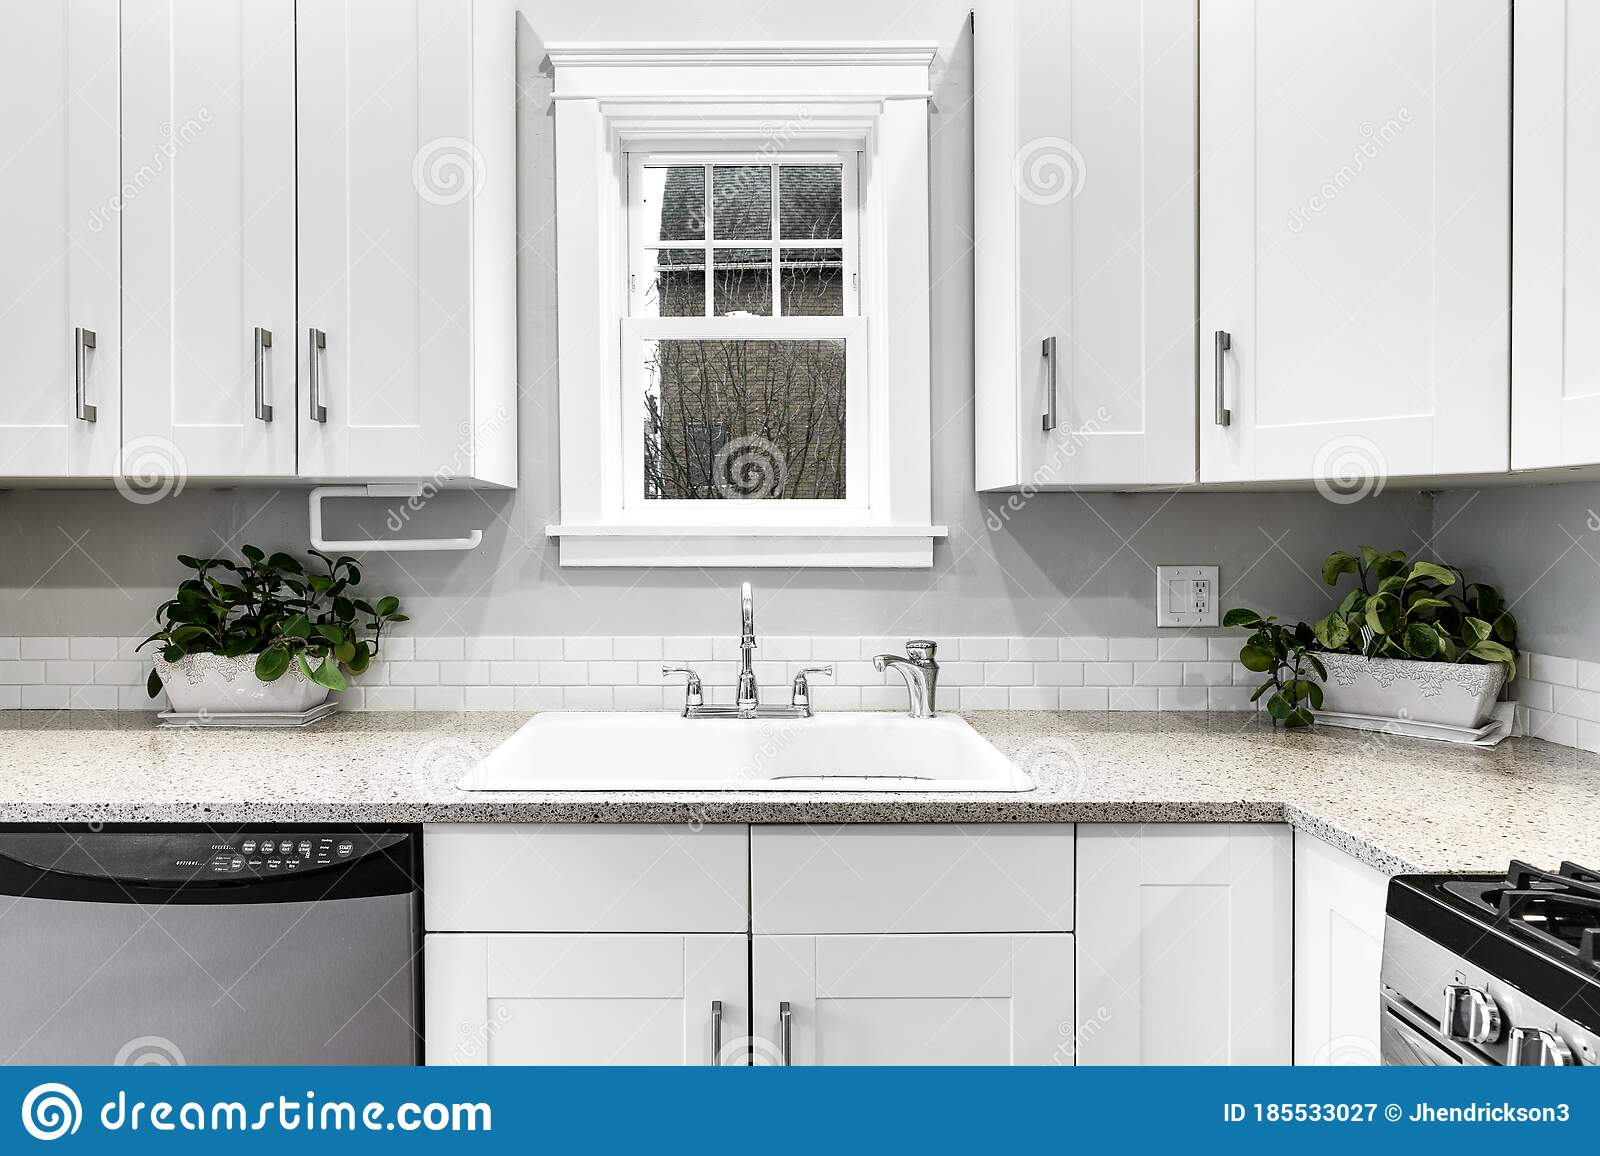 A White Kitchen With Stainless Steel Appliances Stock Image Image Of Design Inside 185533027